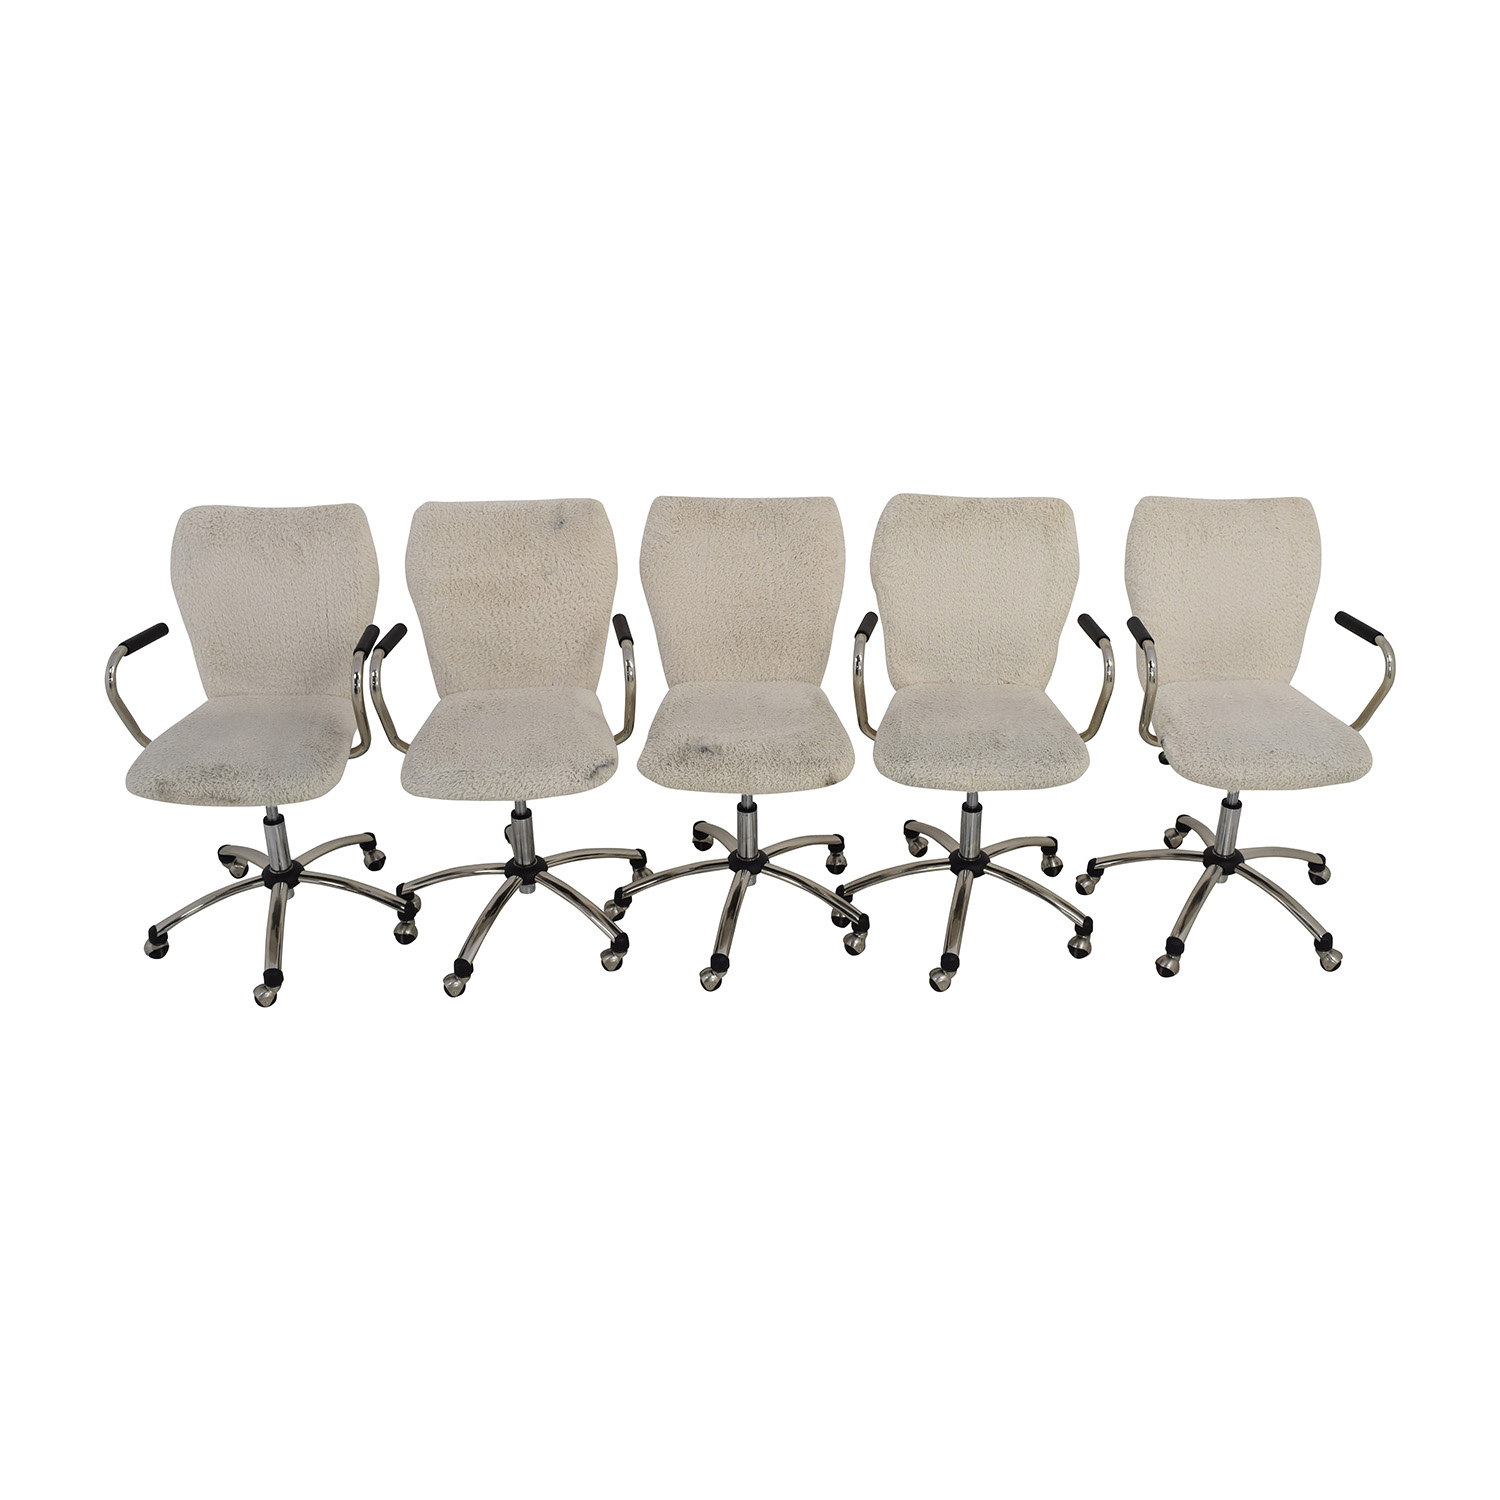 PBteen PBteen Ivory Sherpa Faux-Fur Airgo Chairs Chairs